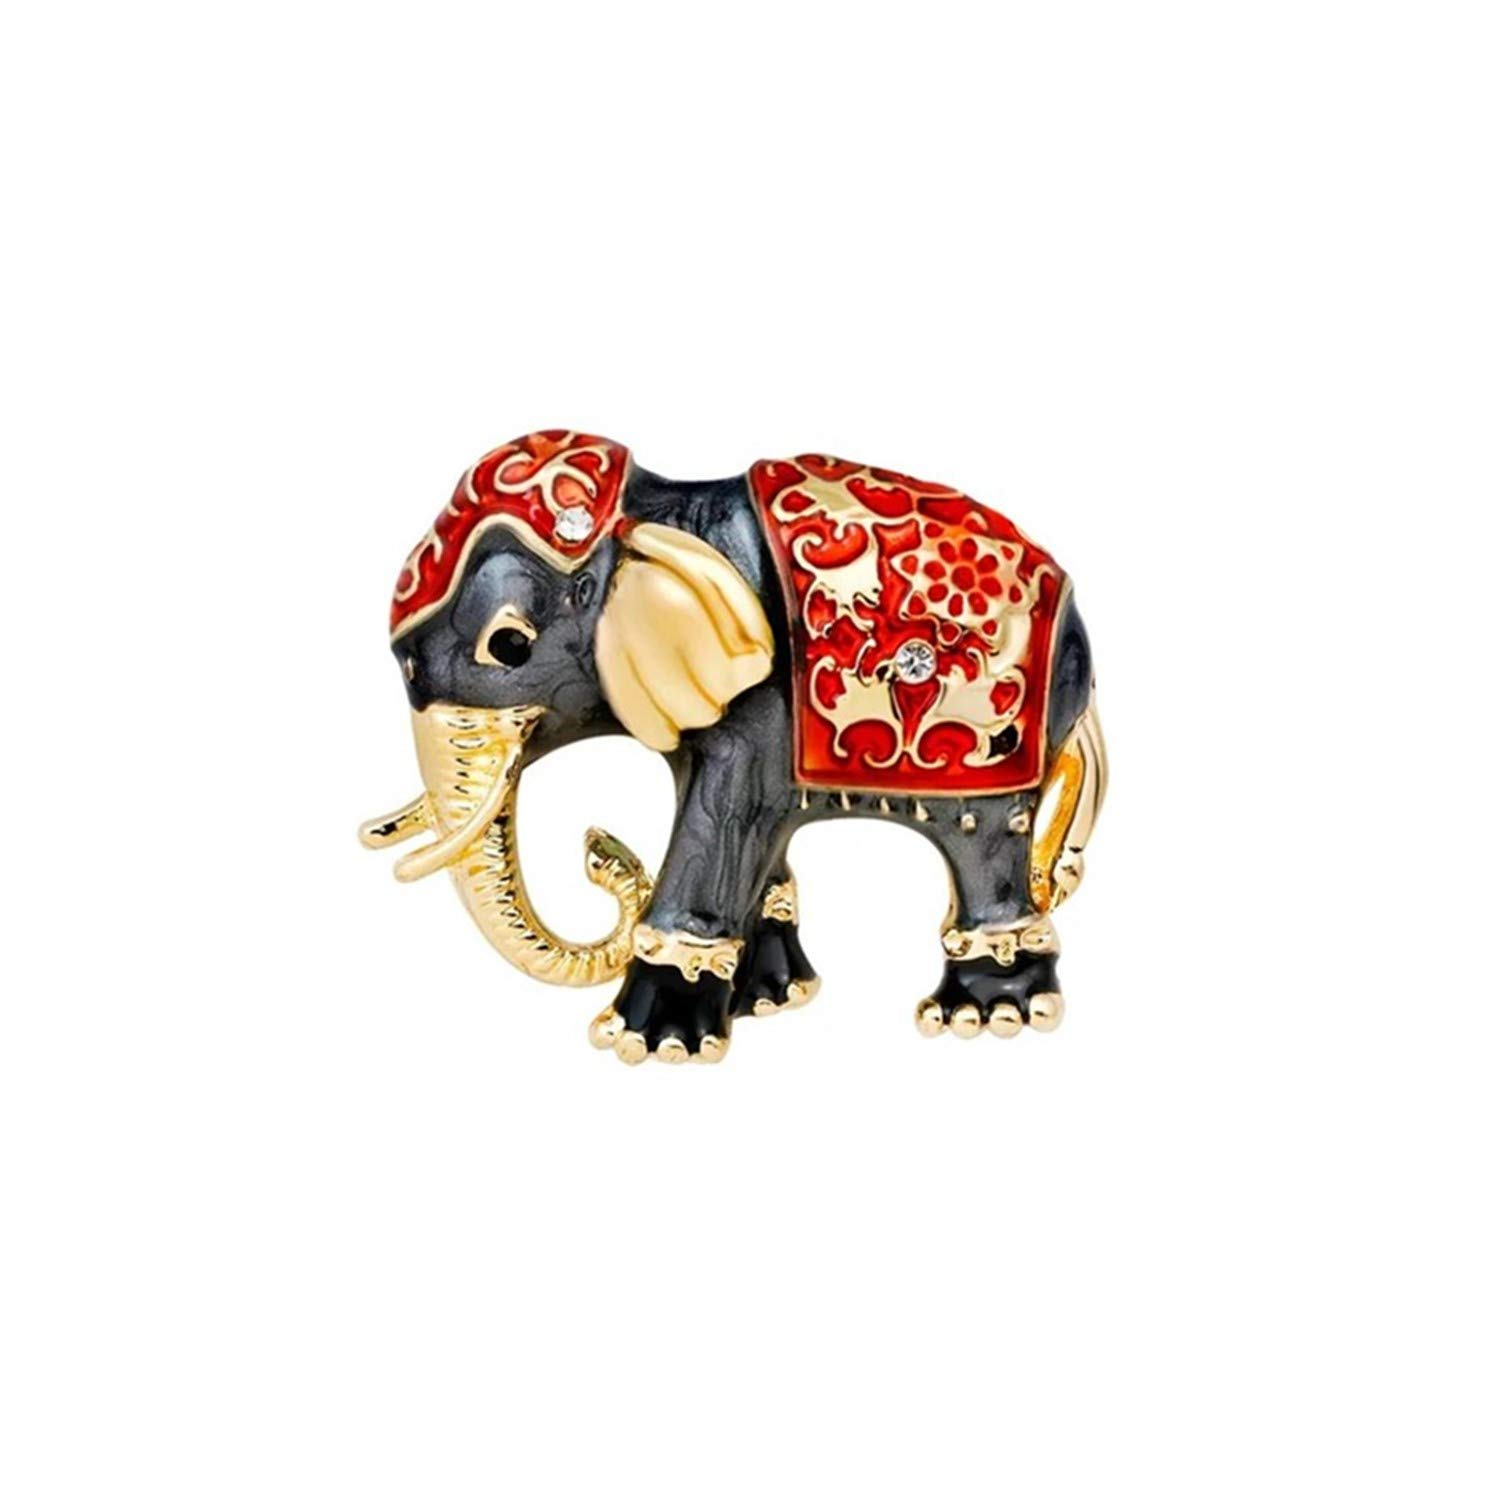 Mondora Prom Brooch Pin Animal Elephant Enamel Women's Austrian Crystal Gold-Tone ZH00114-1C